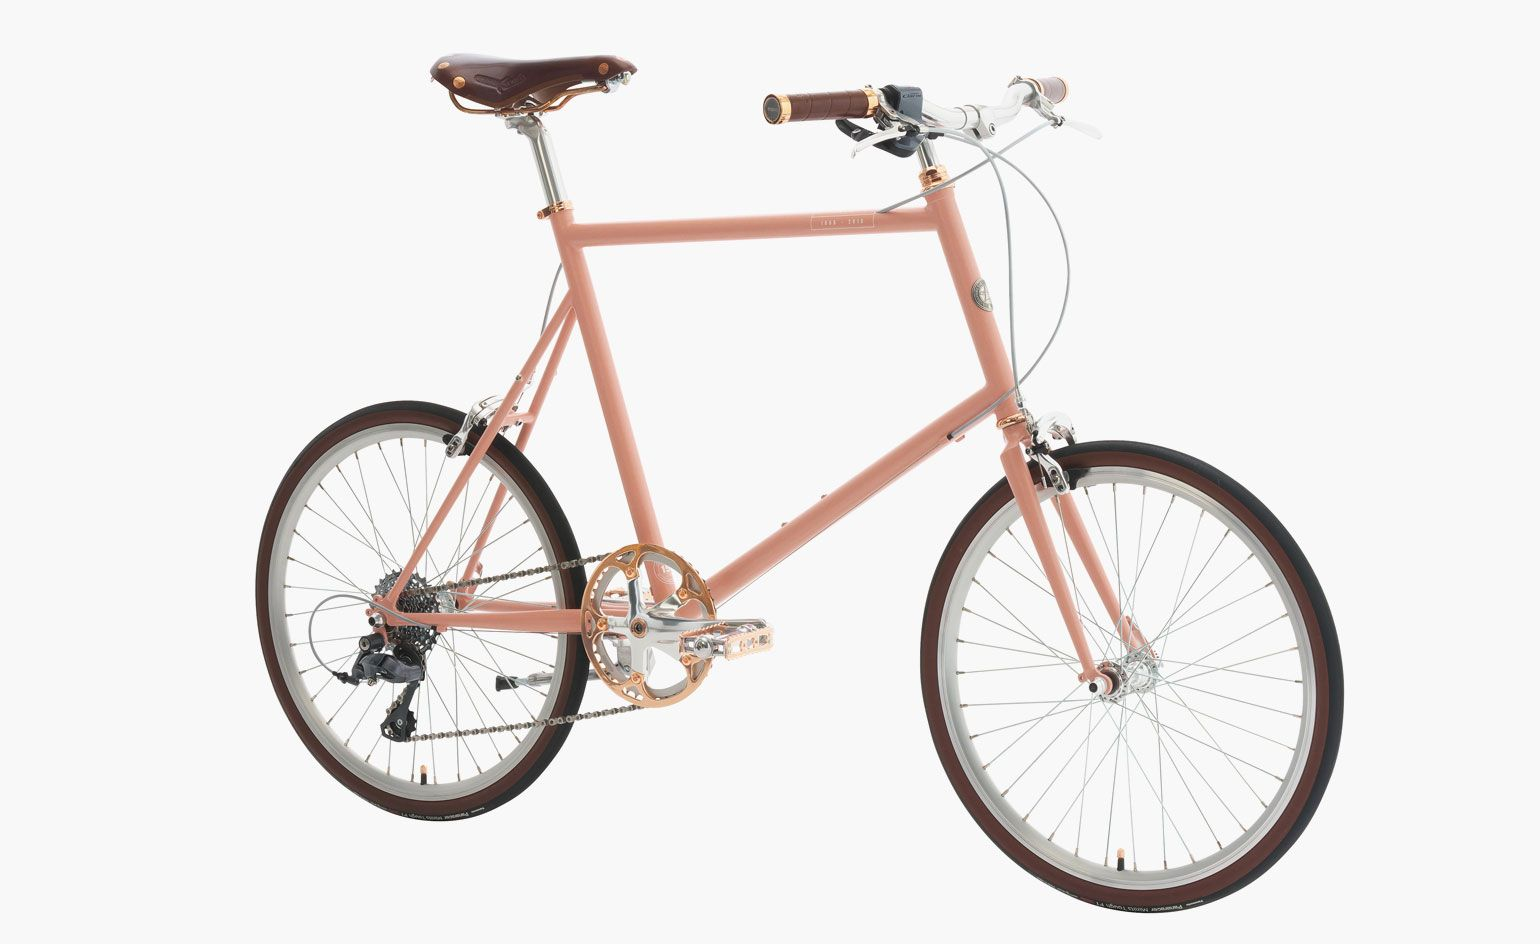 Old Meets New In A Collaboration Between The Japanese Cycle Brand